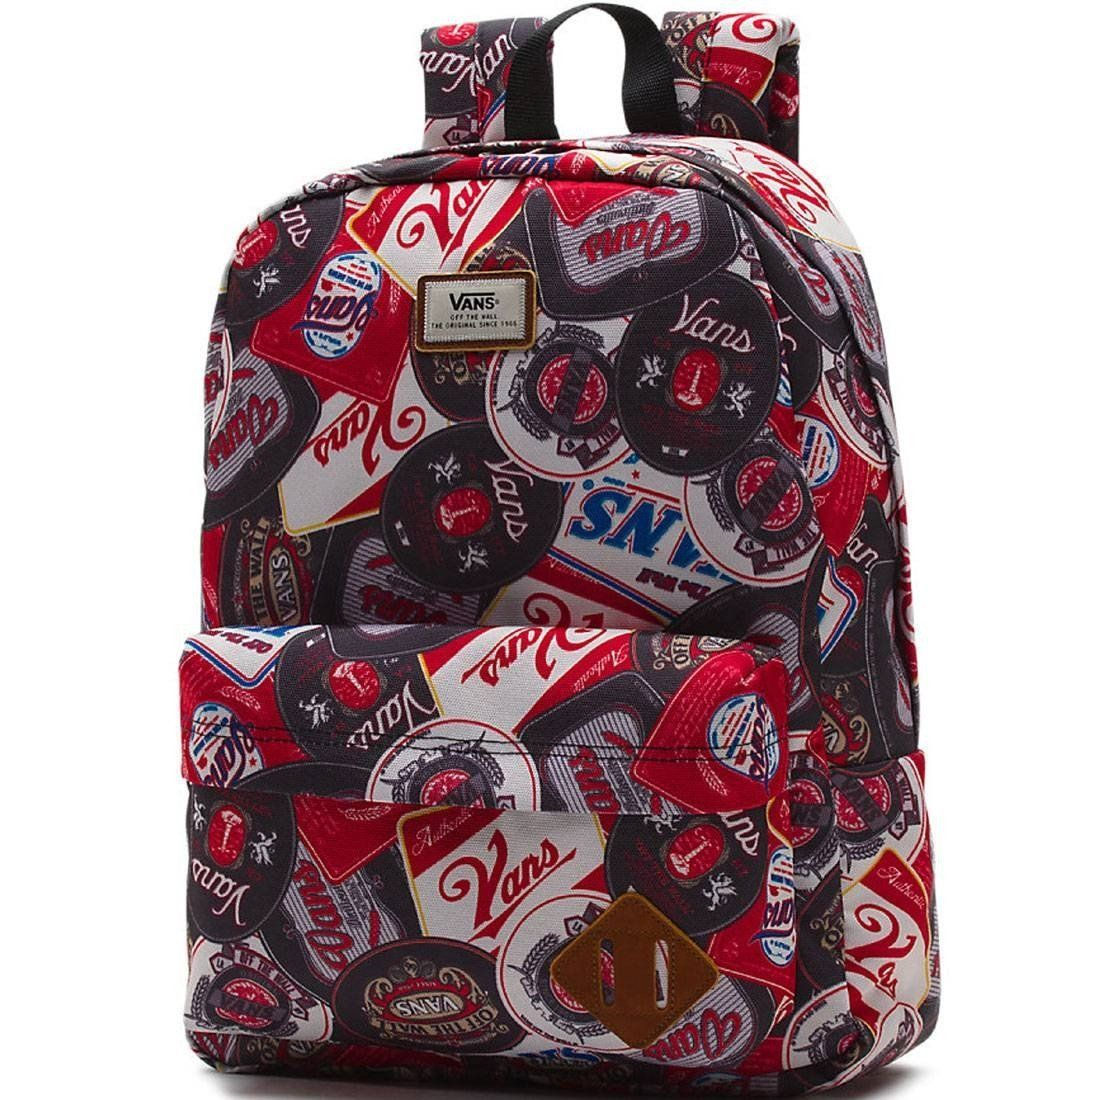 Vans Old Skool II Beer Belly School Book Bag Backpack. 100 ...